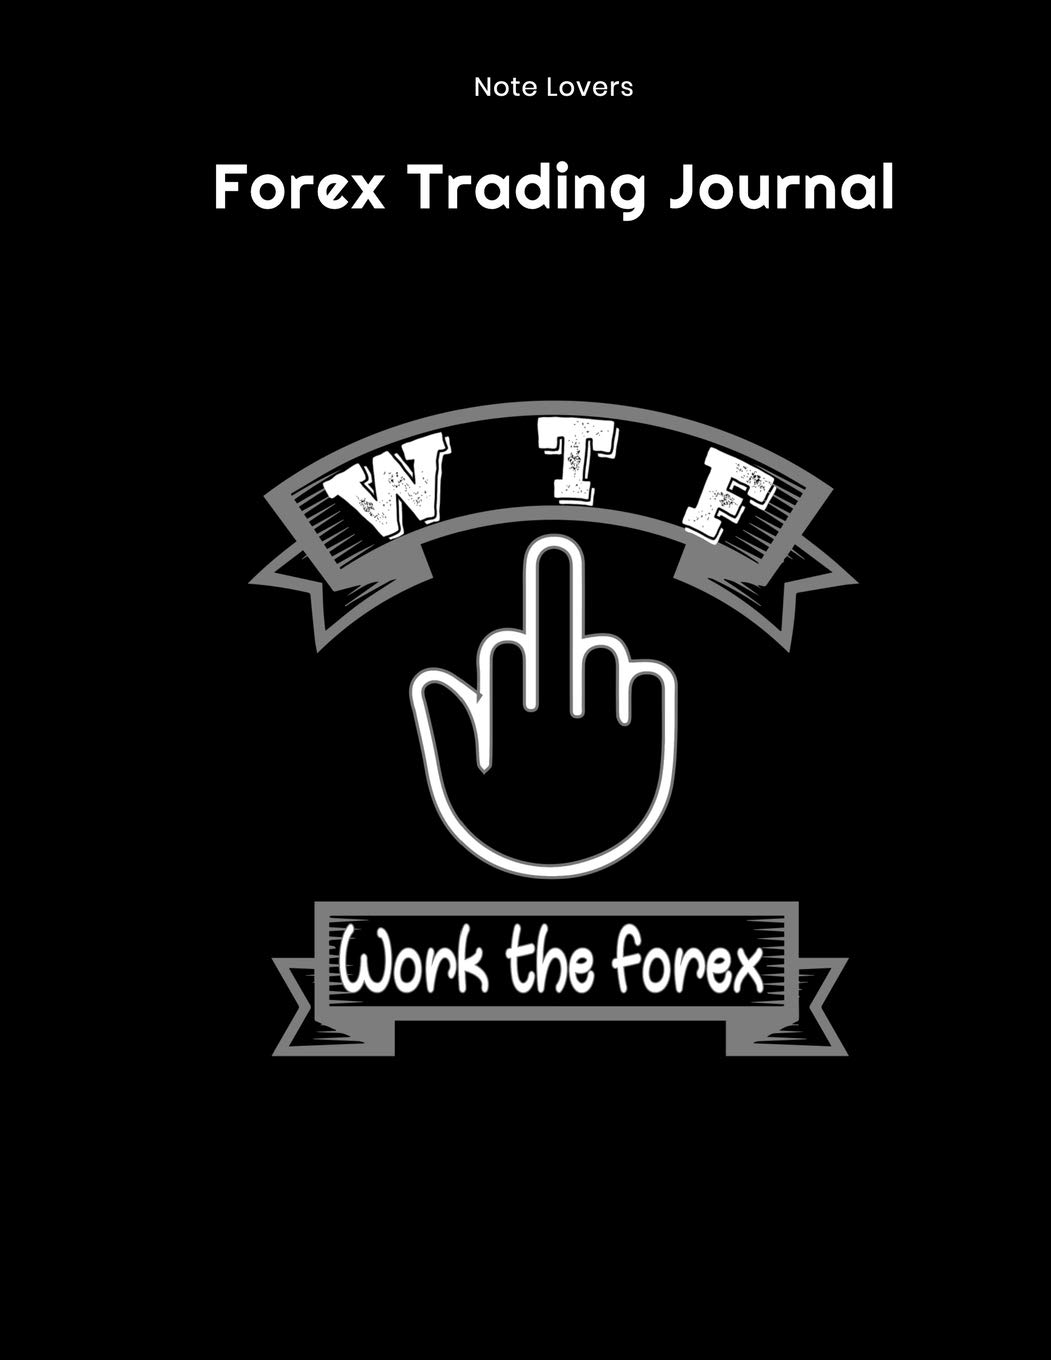 Forex trader gifts kamuntu investments that shoot